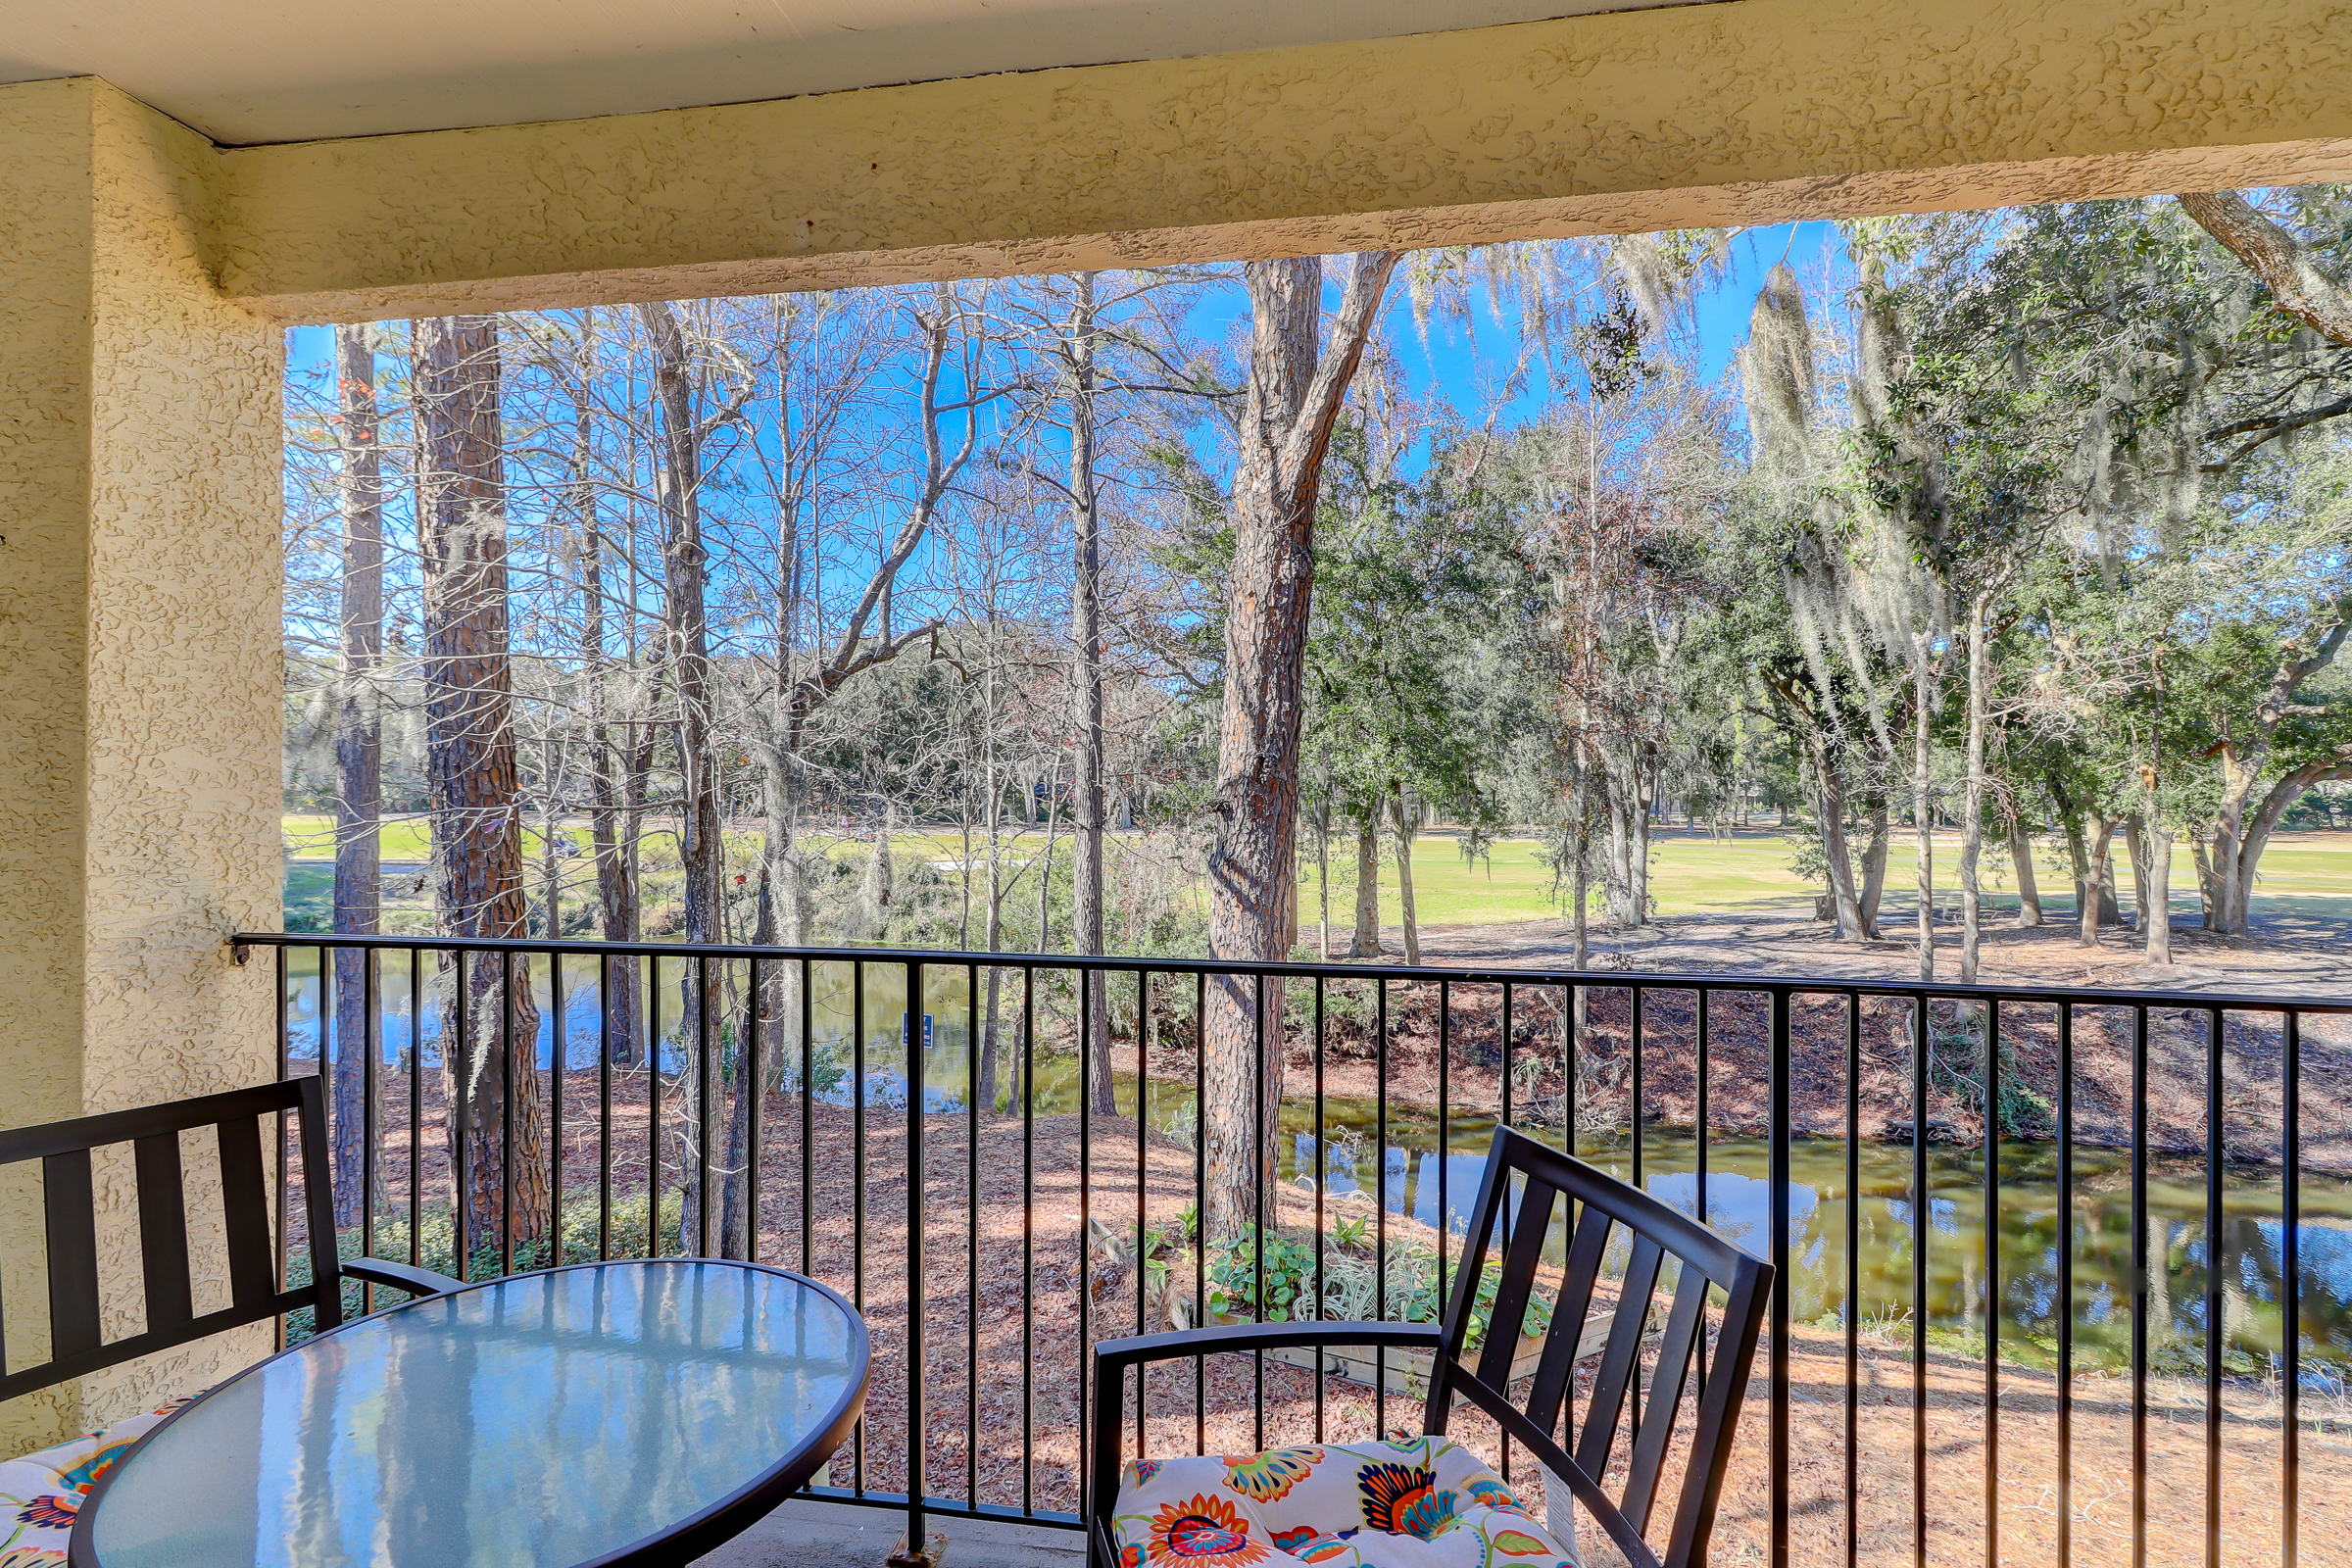 Enjoy the beautiful lowcountry scenery from the covered balcony